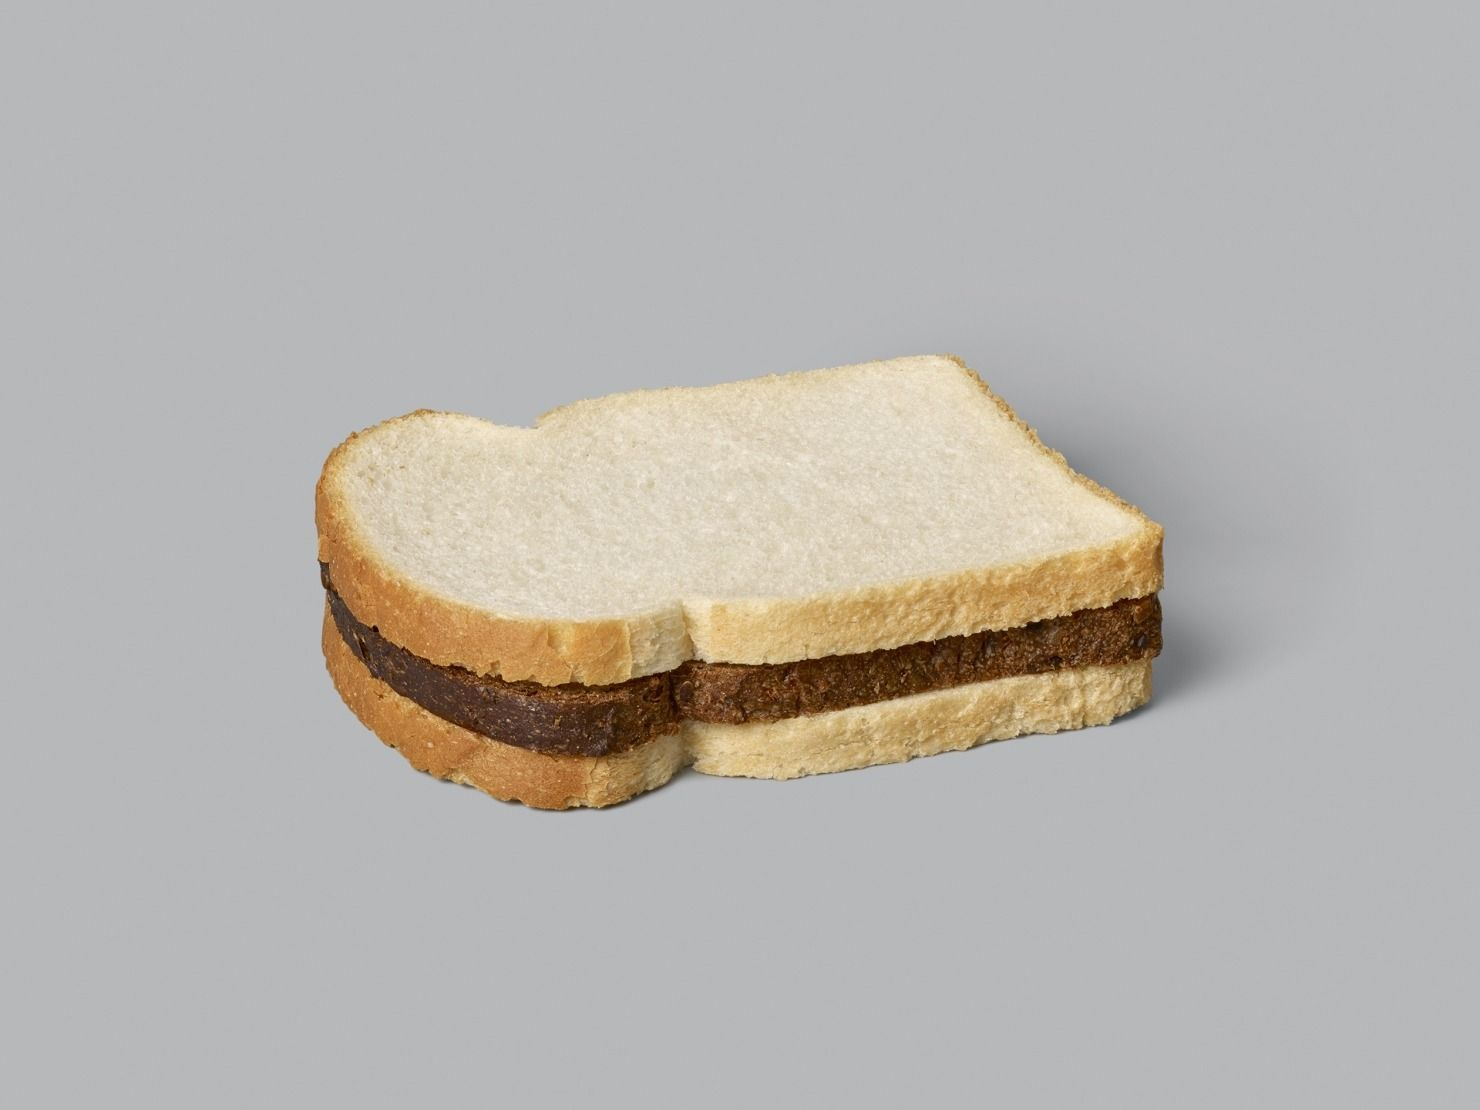 Bread Sandwich Helmut Smits Sandwiches Food Bread